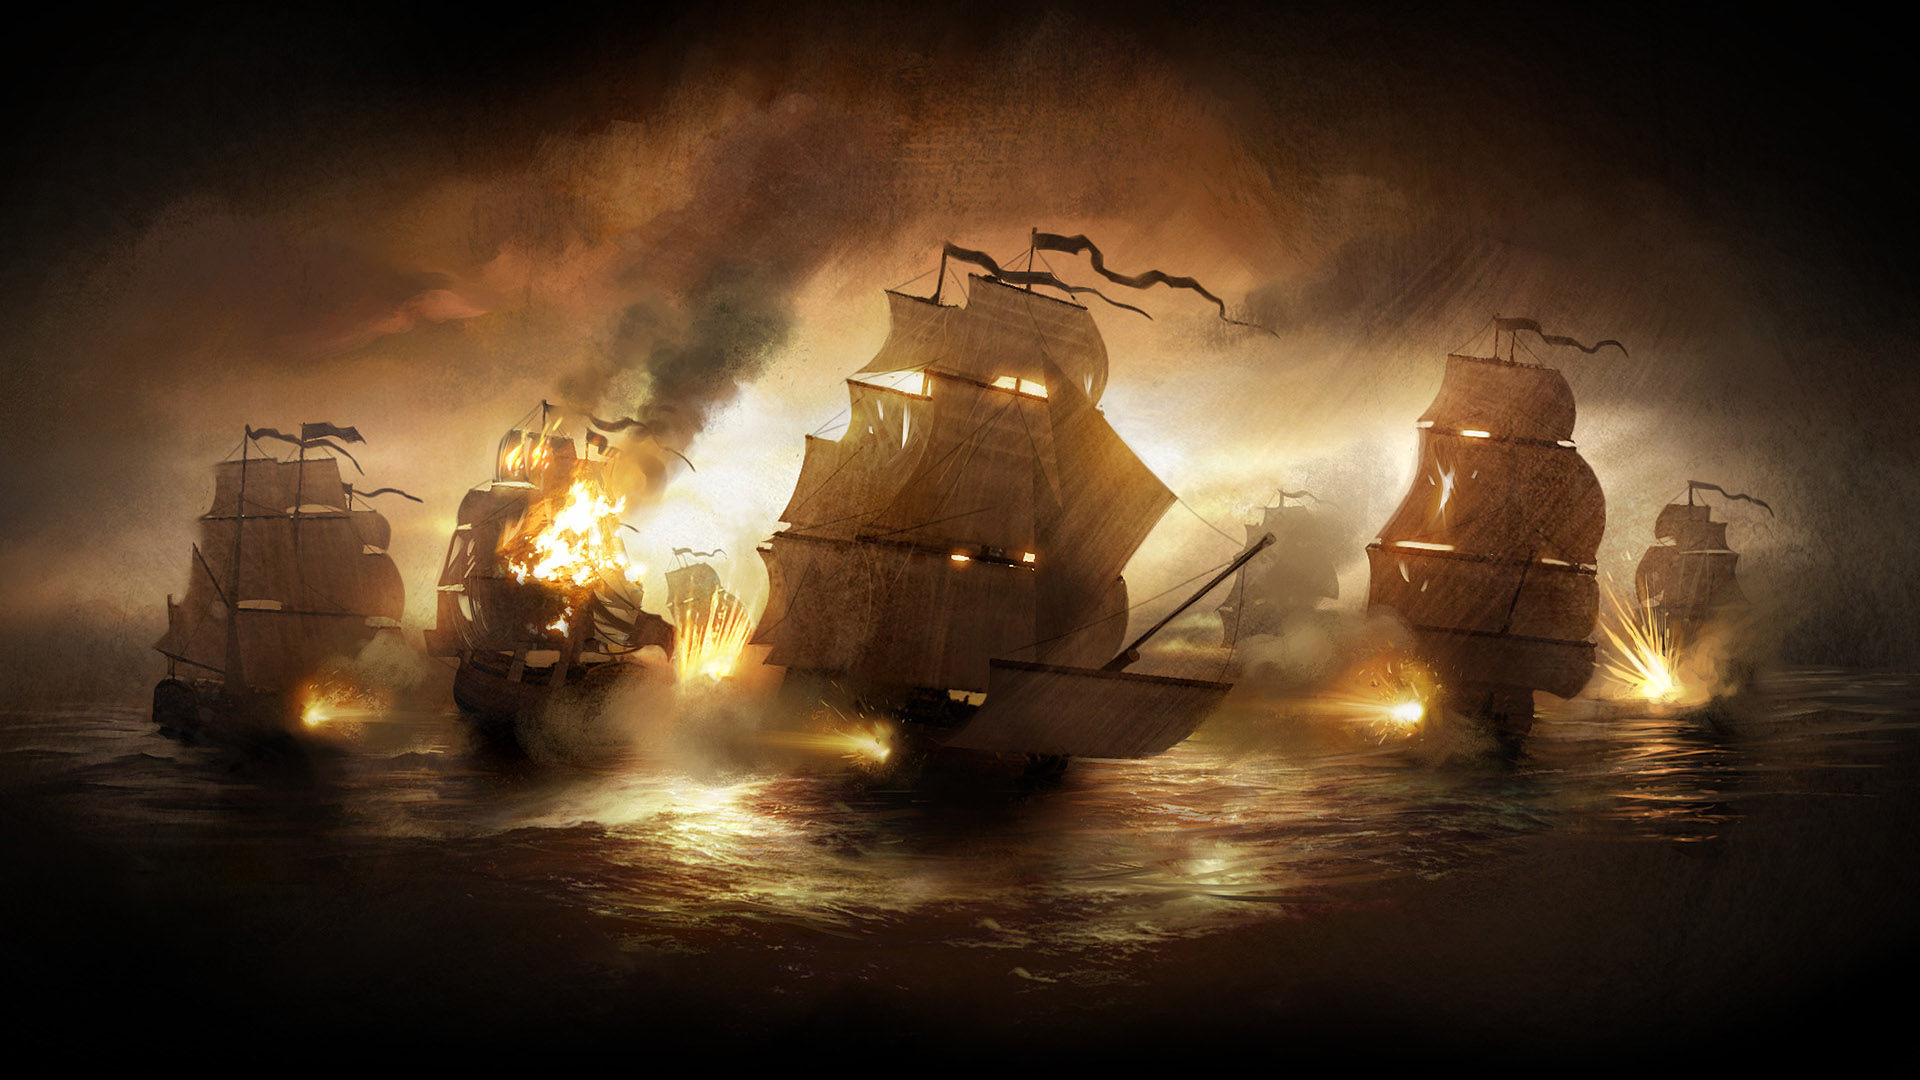 Pirate Wallpaper 1920x1080 48565